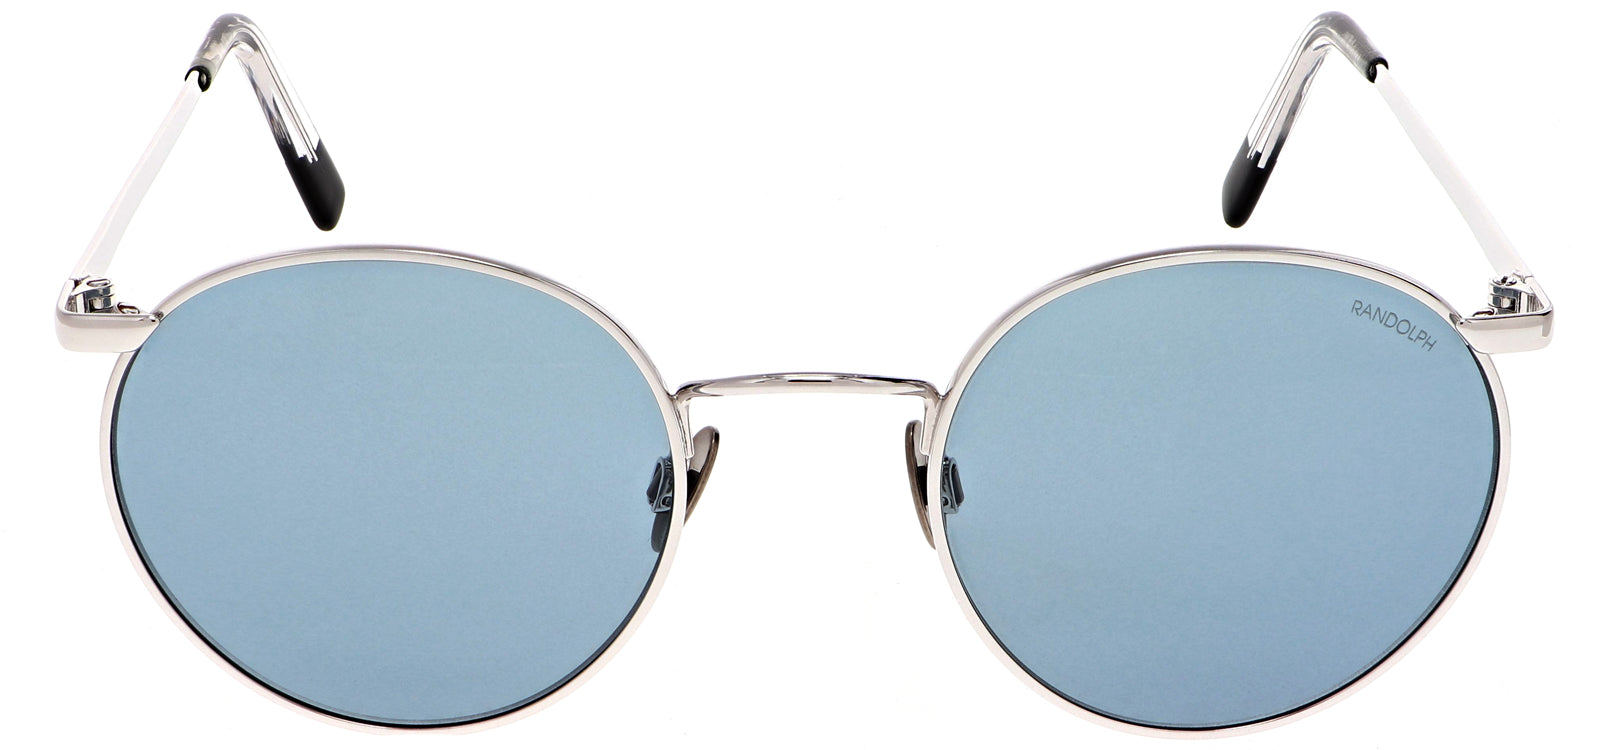 The P3 in White Gold and Blue Hyrdo Lens. | Randolph Engineering